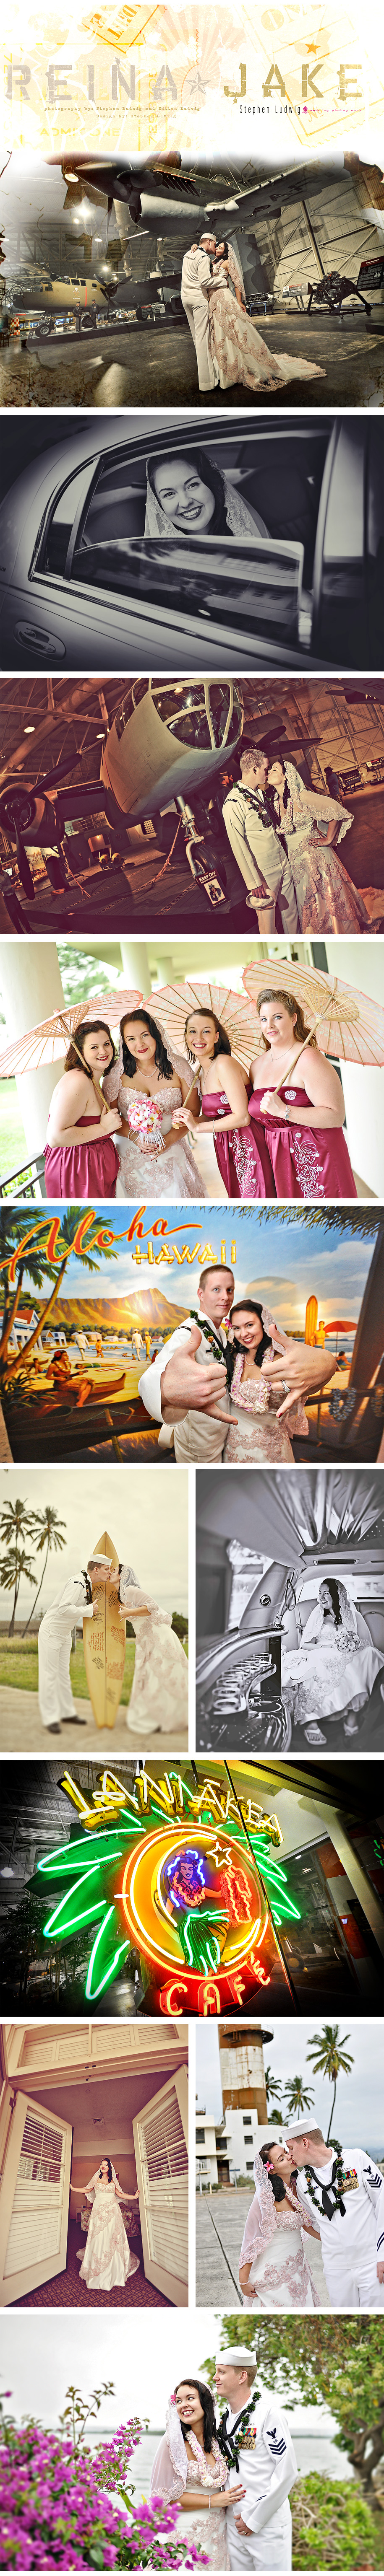 Stephen Ludwig Wedding Photography - Pearl Harbor Wedding - Part 1